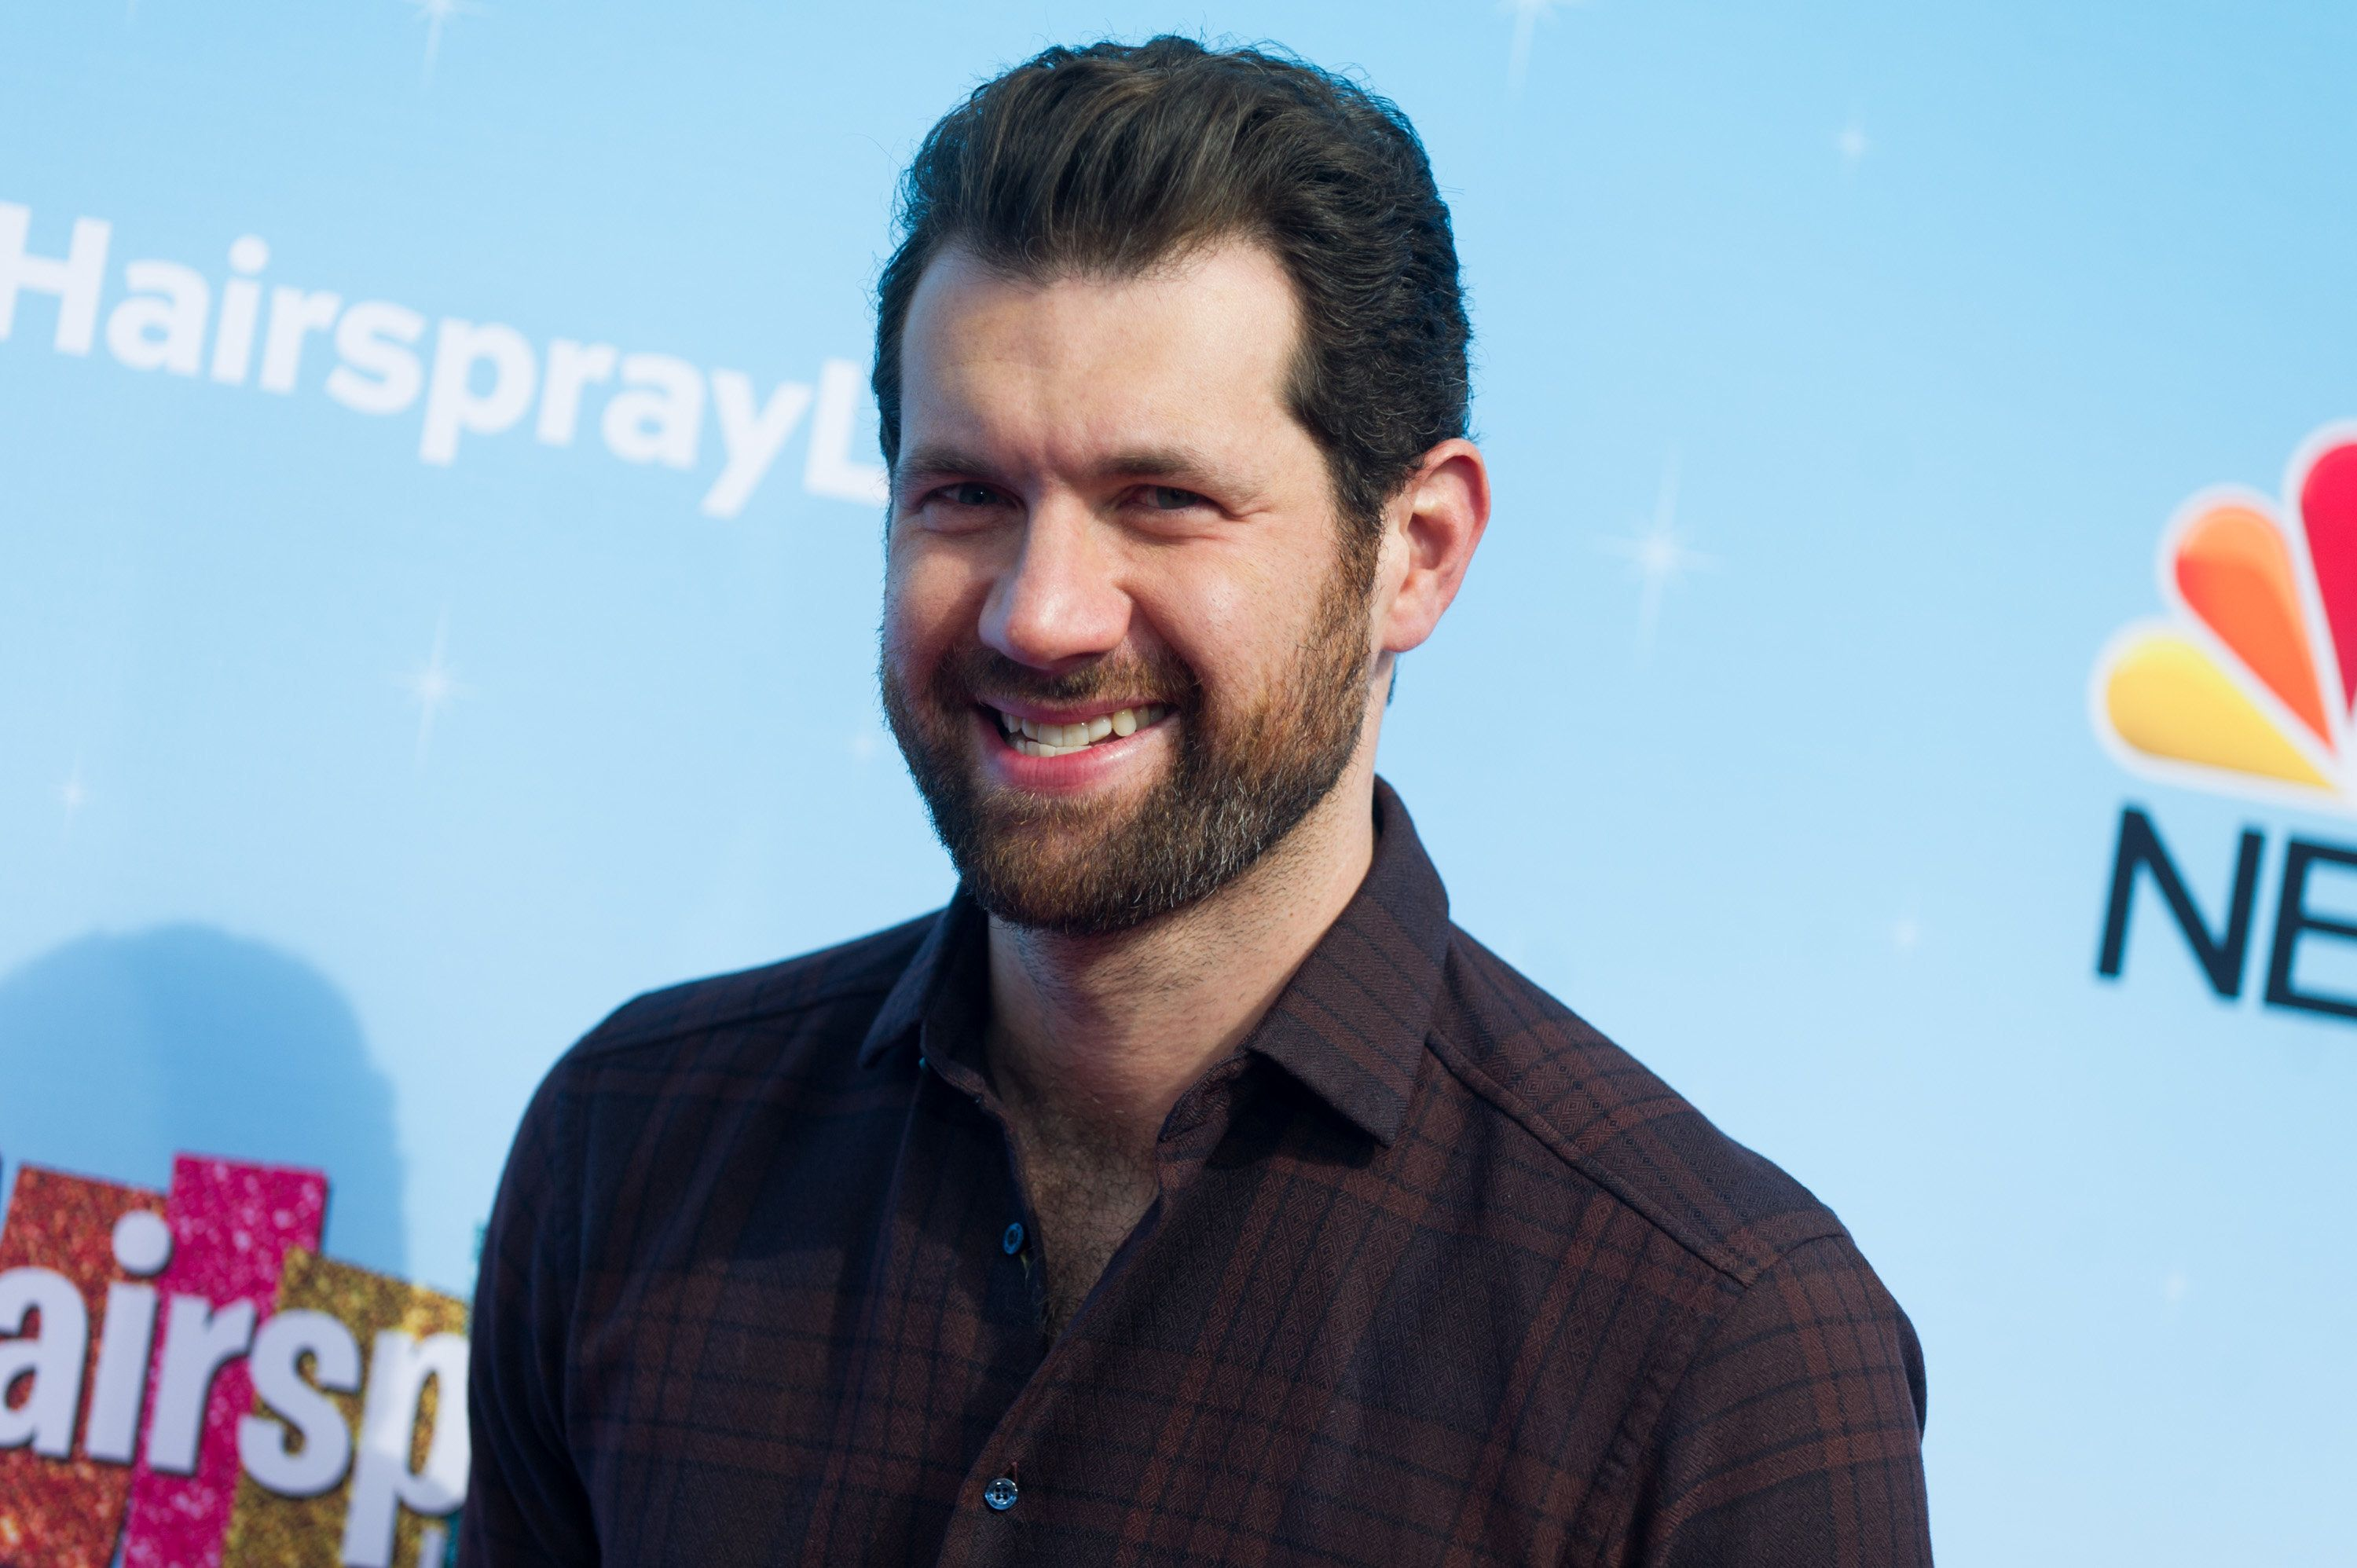 UNIVERSAL CITY, CA - NOVEMBER 16:  Actor Billy Eichner attends the press junket for NBC's 'Hairspray Live!' at NBC Universal Lot on November 16, 2016 in Universal City, California.  (Photo by Emma McIntyre/Getty Images)